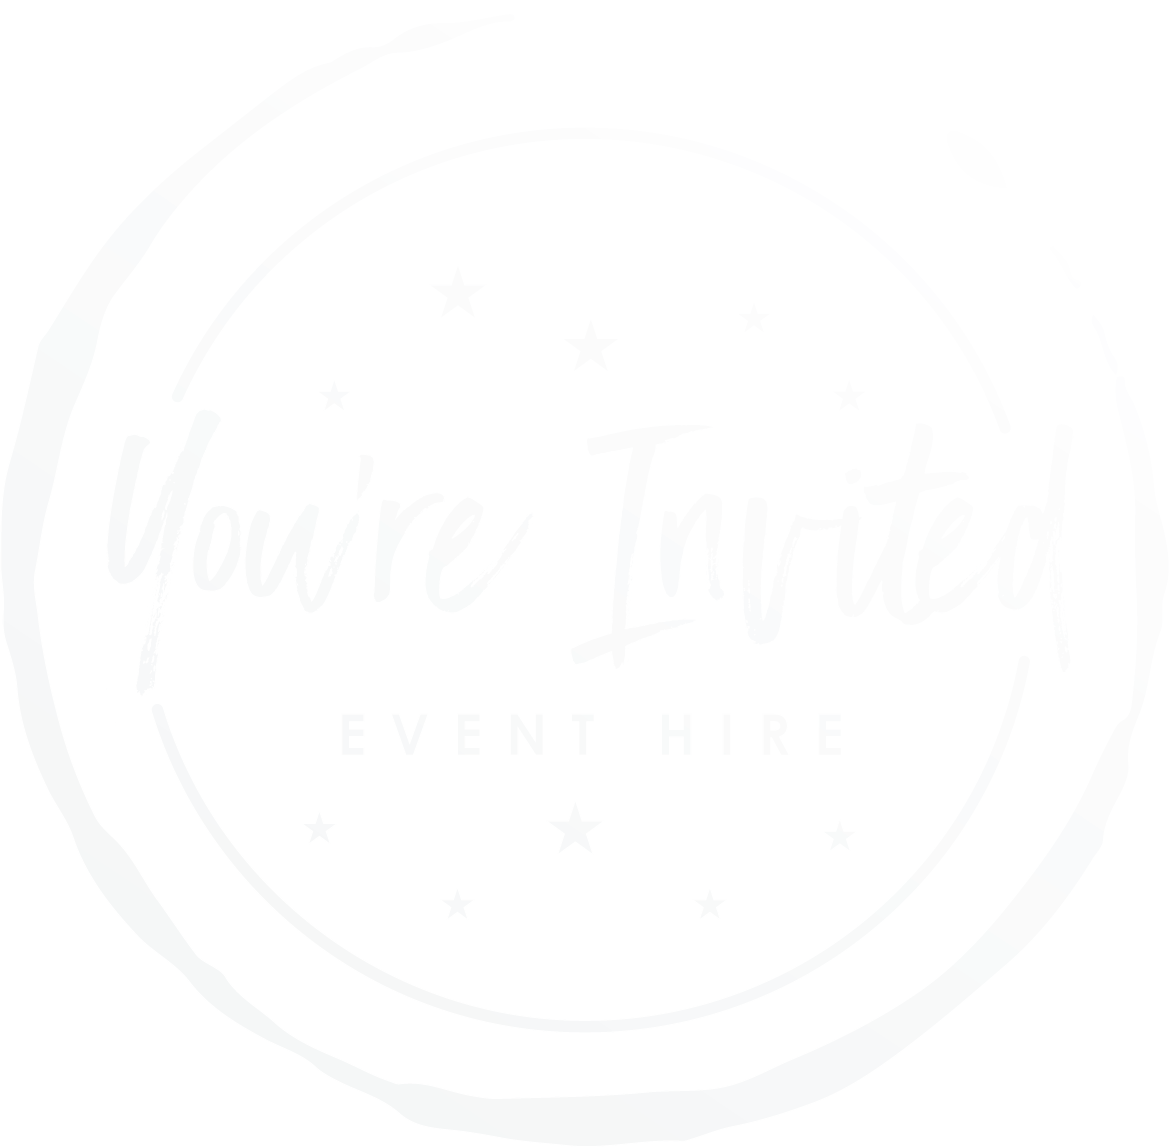 You're Invited Event Hire Pty Ltd Q